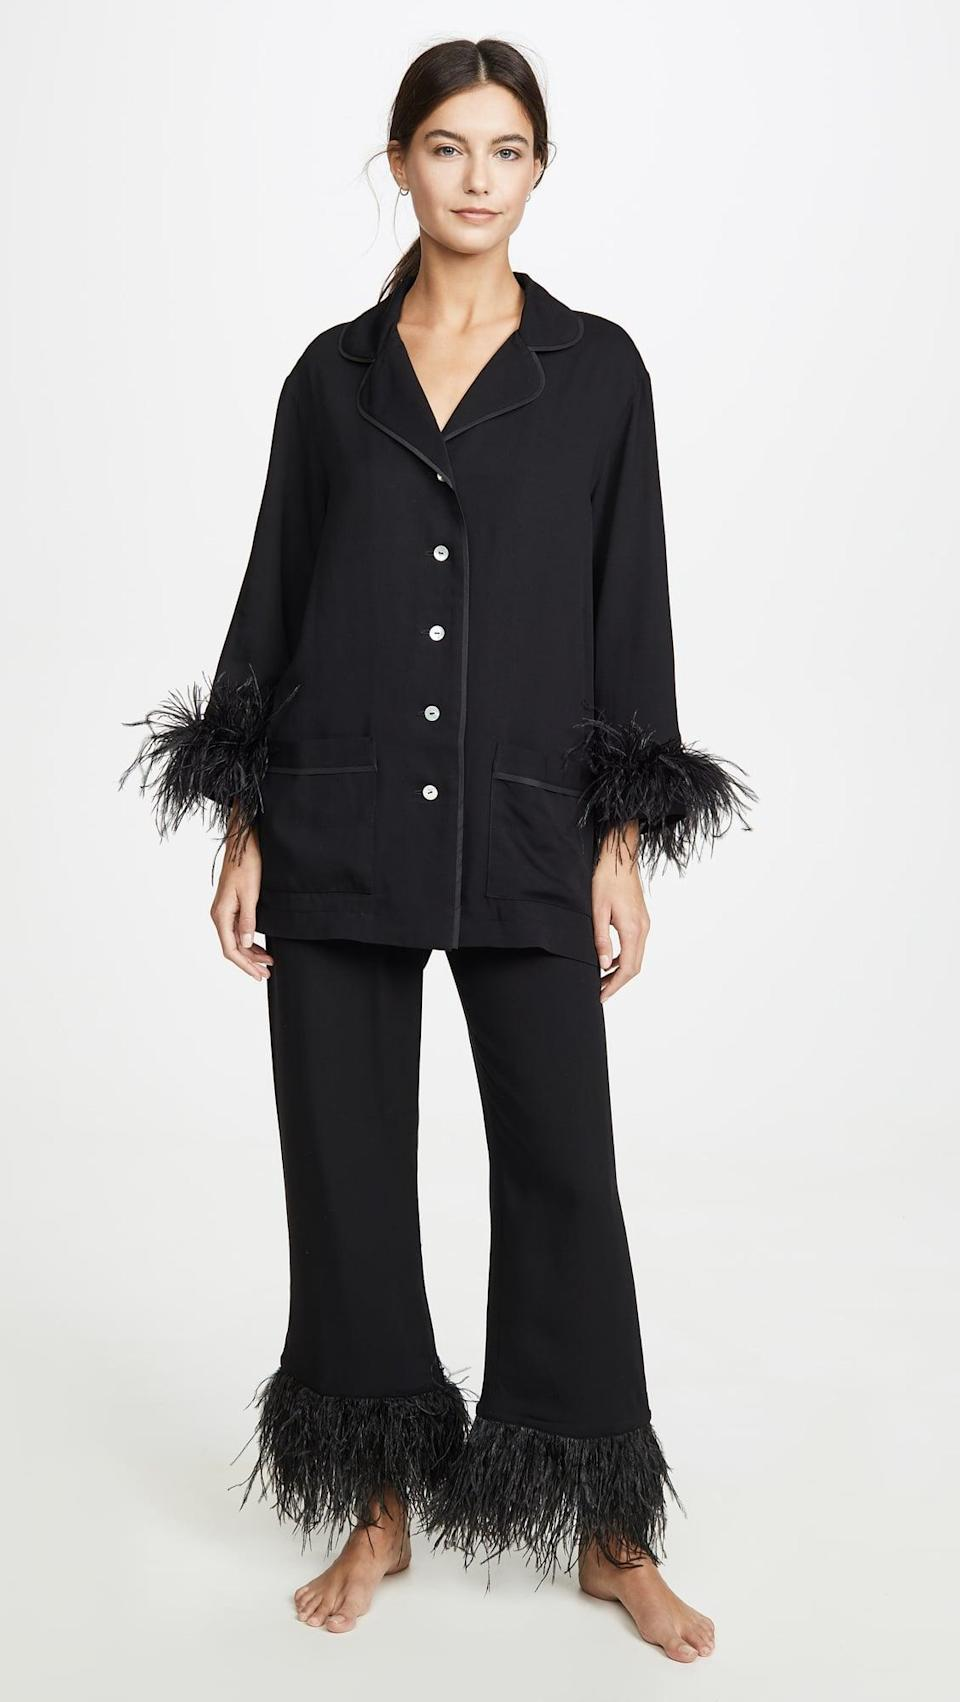 <p>We all know someone who needs this <span>Sleeper Black Tie PJ Set With Feathers</span> ($320).</p>